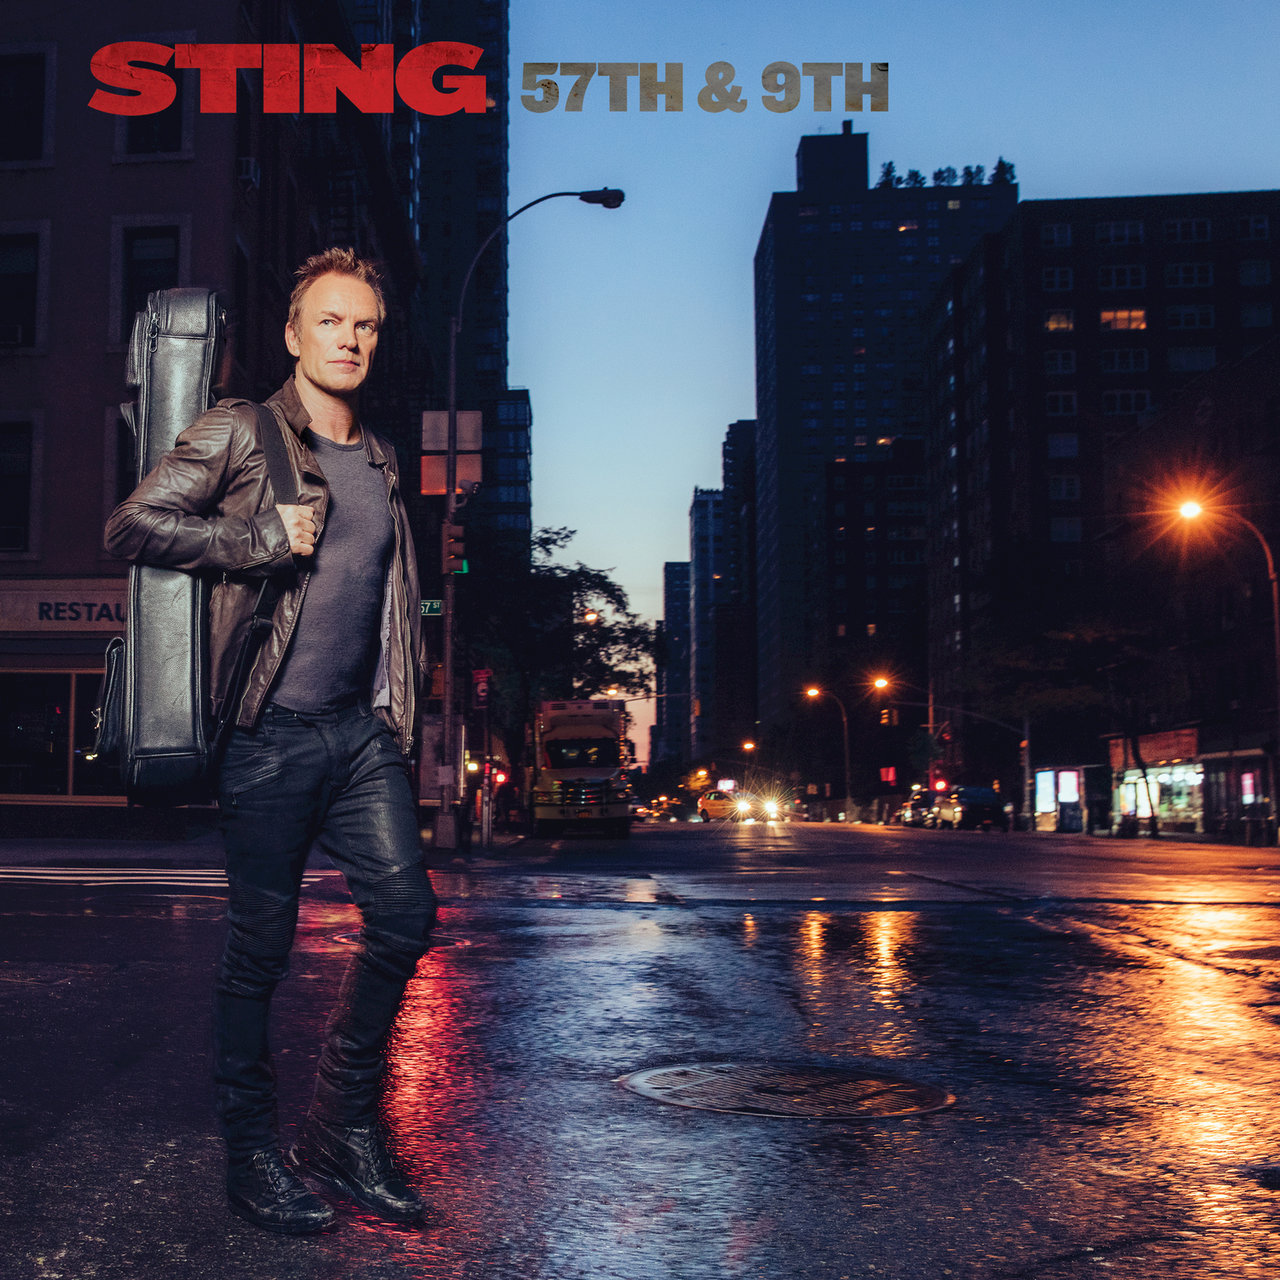 Sting_57thand9th.jpg